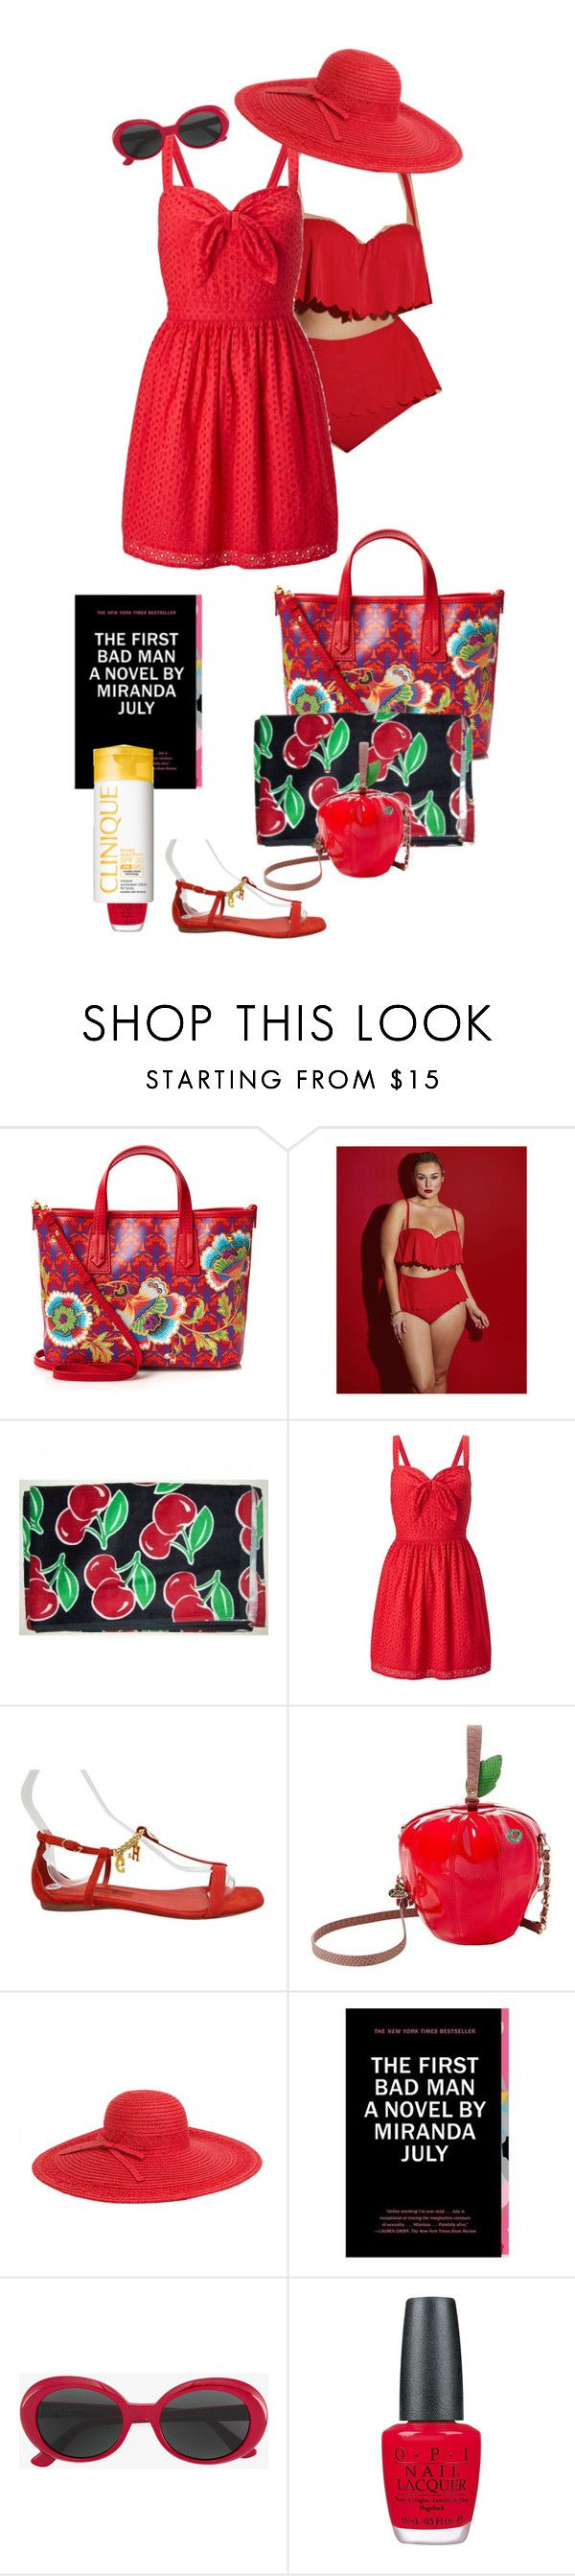 """red beach dress (Aoife)"" by shulabond on Polyvore featuring Liberty, Lela Rose, Miss Selfridge, Carolina Herrera, Betsey Johnson, Magid, Yves Saint Laurent, OPI, Clinique and plus size clothing"